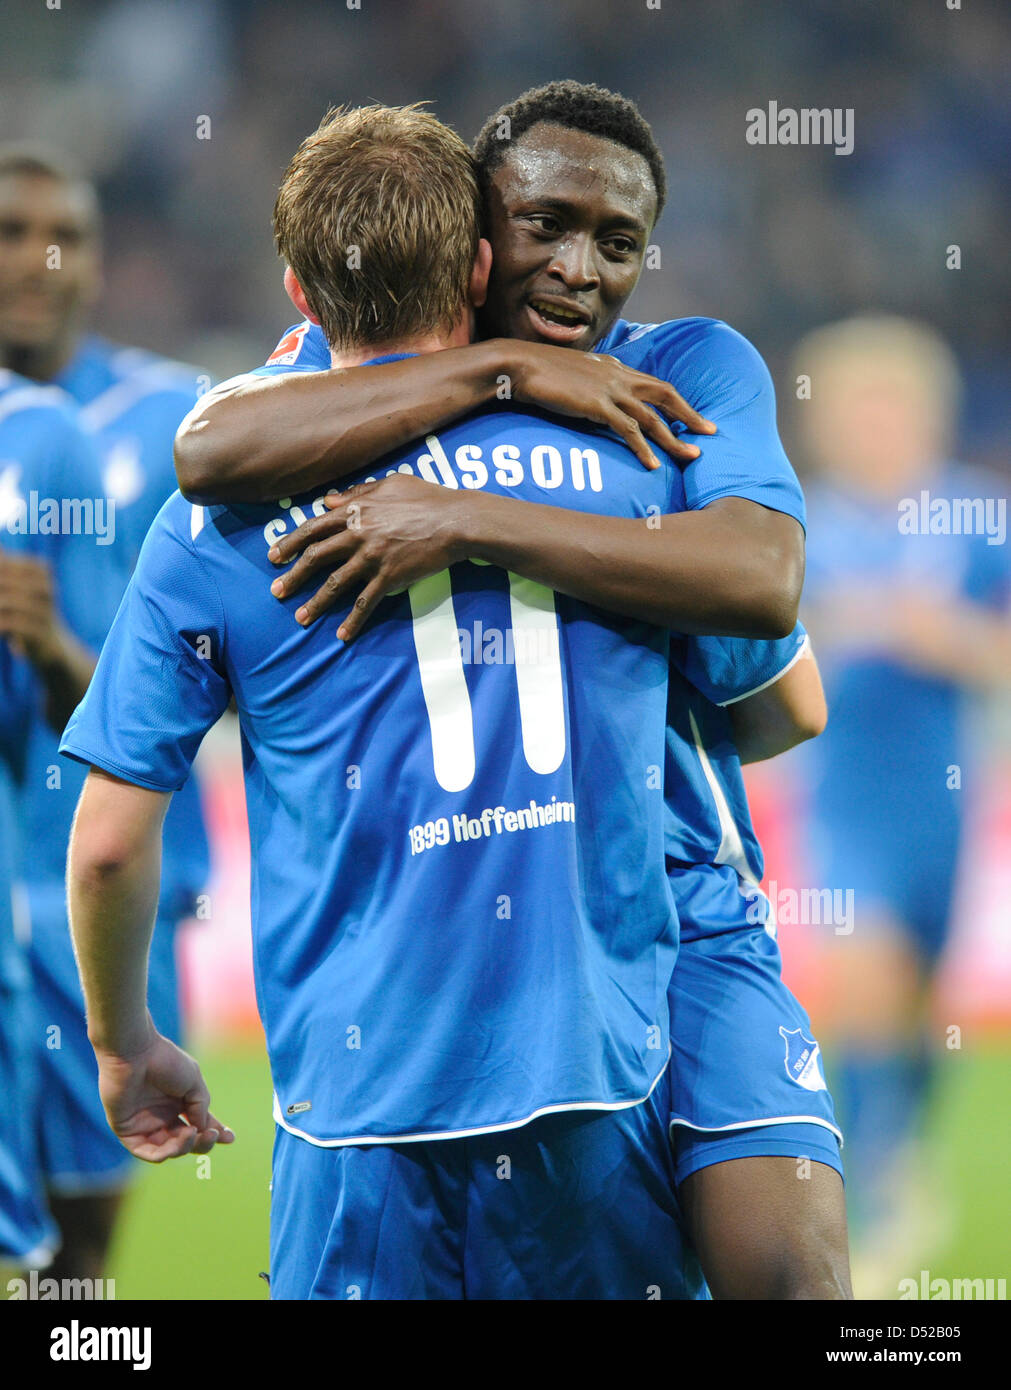 Hoffenheim s Gylfi Sigurdsson L and Chinedu Obasi cheer after